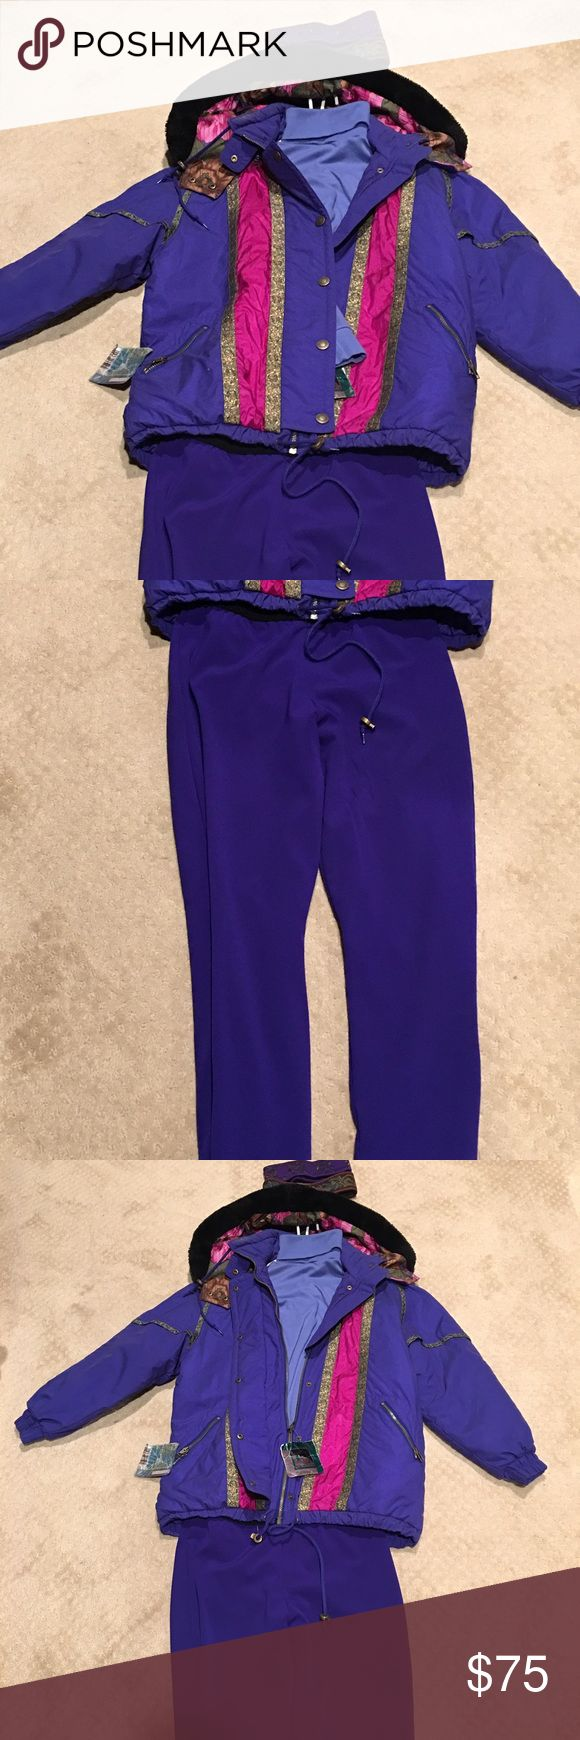 5 piece Royal Purple ski ensemble. SALE on this georgous Purple ski ensemble. You'll be ready to hit the slopes- all you'll need is boots skis and a pass and your ready to go. OSSI SKI JACKET size M, Faux fur floral hood, zip and snap front closure. OSSI turtleneck size M, TYROLIA lined ski pants with extra wide elastic waistband for super comfort. OSSI and TYROLIA Other